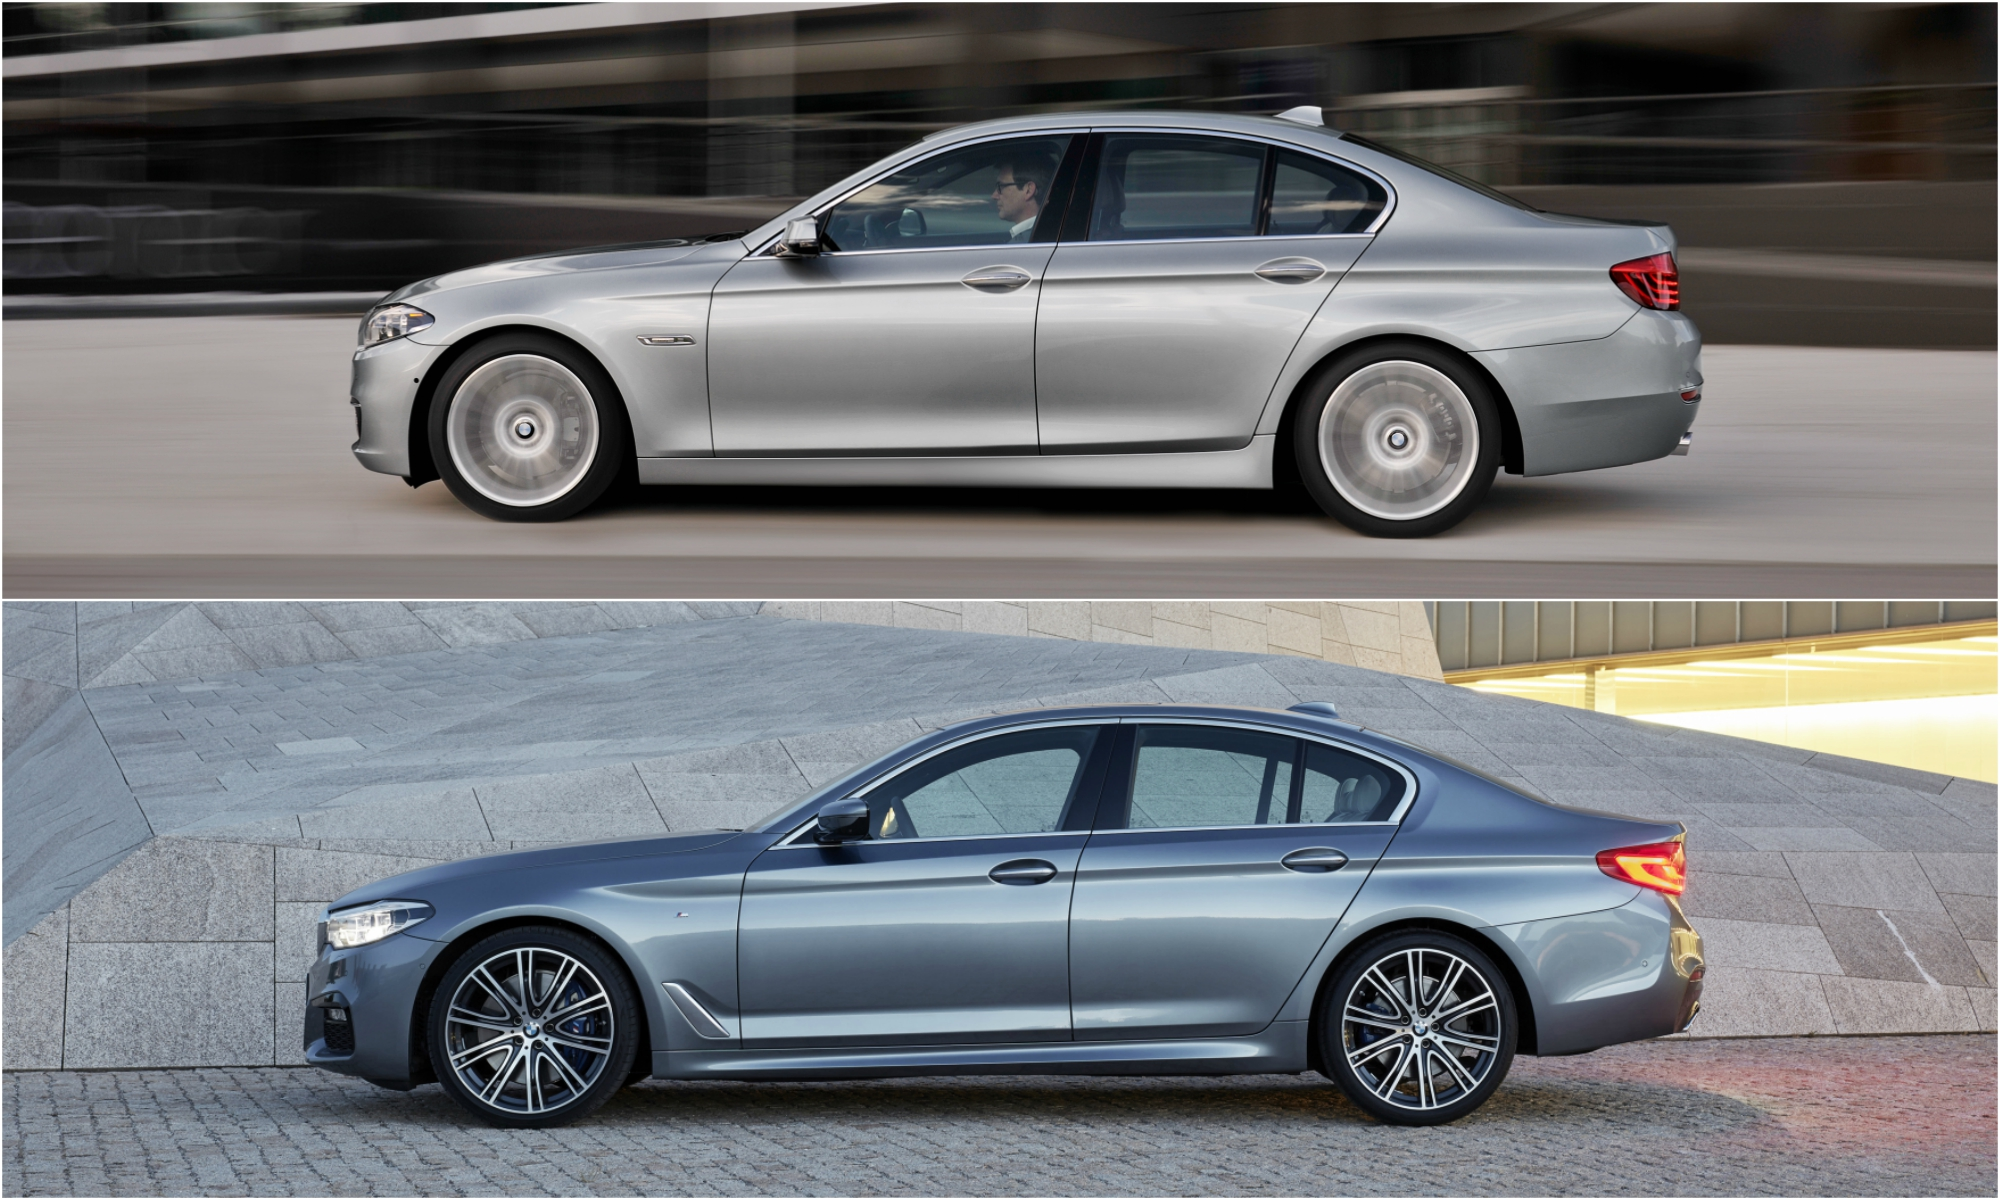 Sadly The Handsome New 2017 Bmw 5 Series Looks Exactly